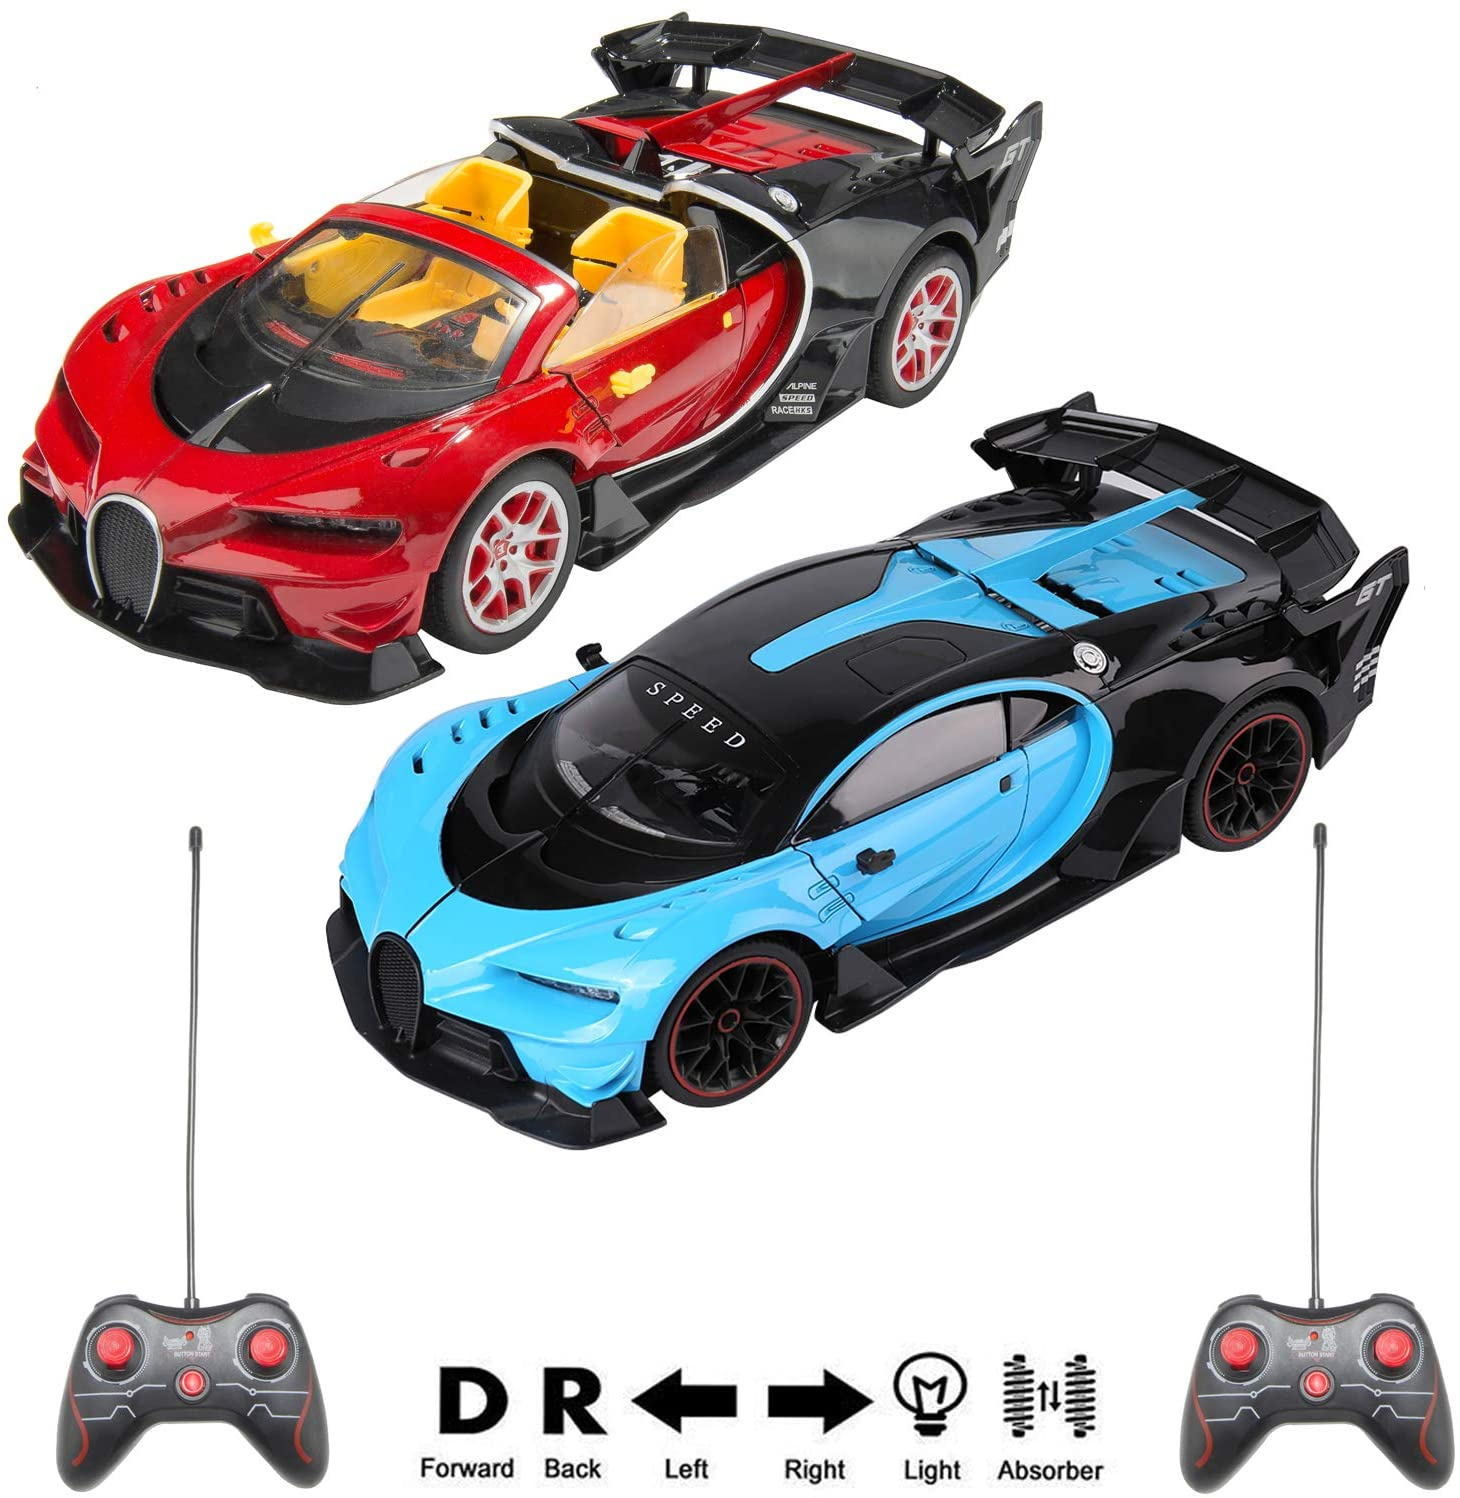 1/14 Scale Chiron Remote Control Sports Vehicle Bundle Set with Blue and Red Chiron R/C Cars for Adults, Boys, Girls, Kids